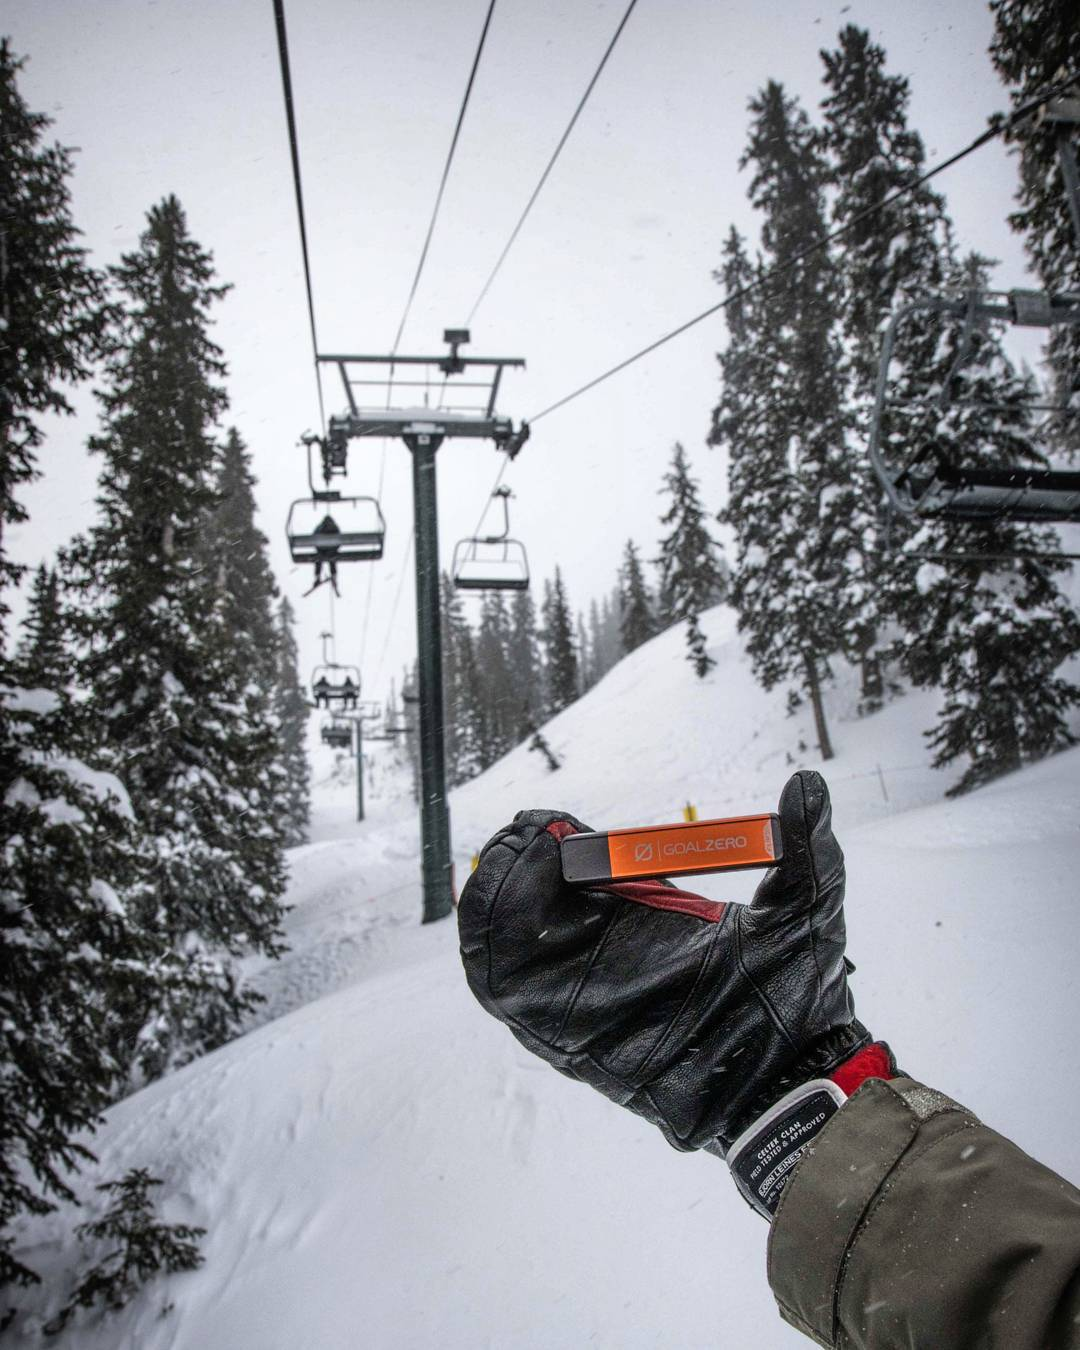 A cold day and a couple feet of fresh snow at @brightonresort can drain your phone battery. Bring an extra. #getoutstayout